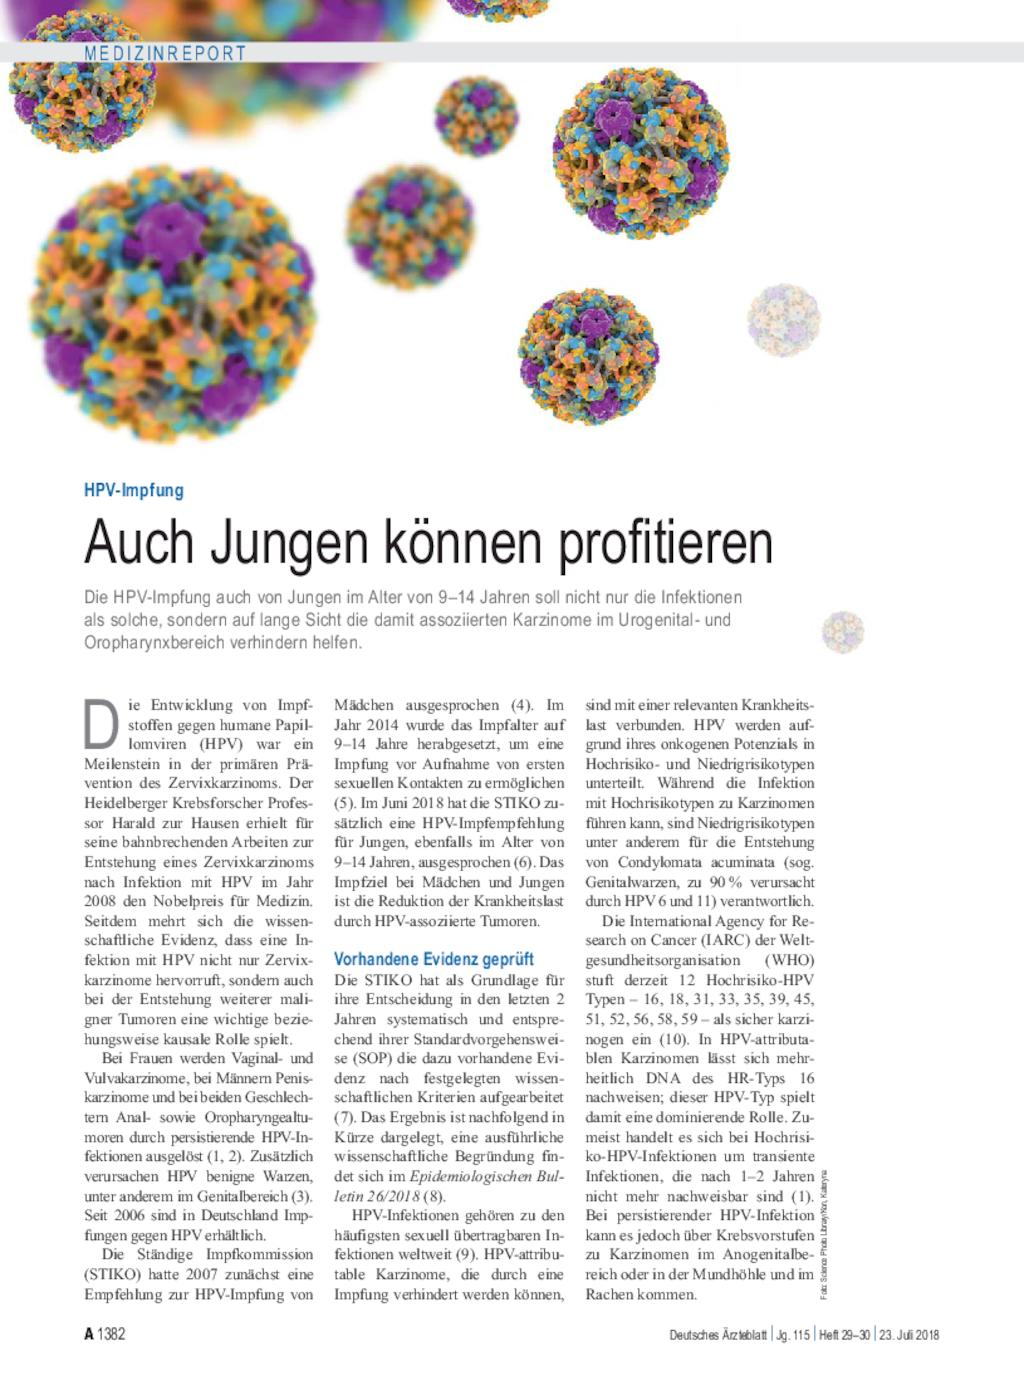 hpv impfung jungen welcher impfstoff hpv cryotherapy removal